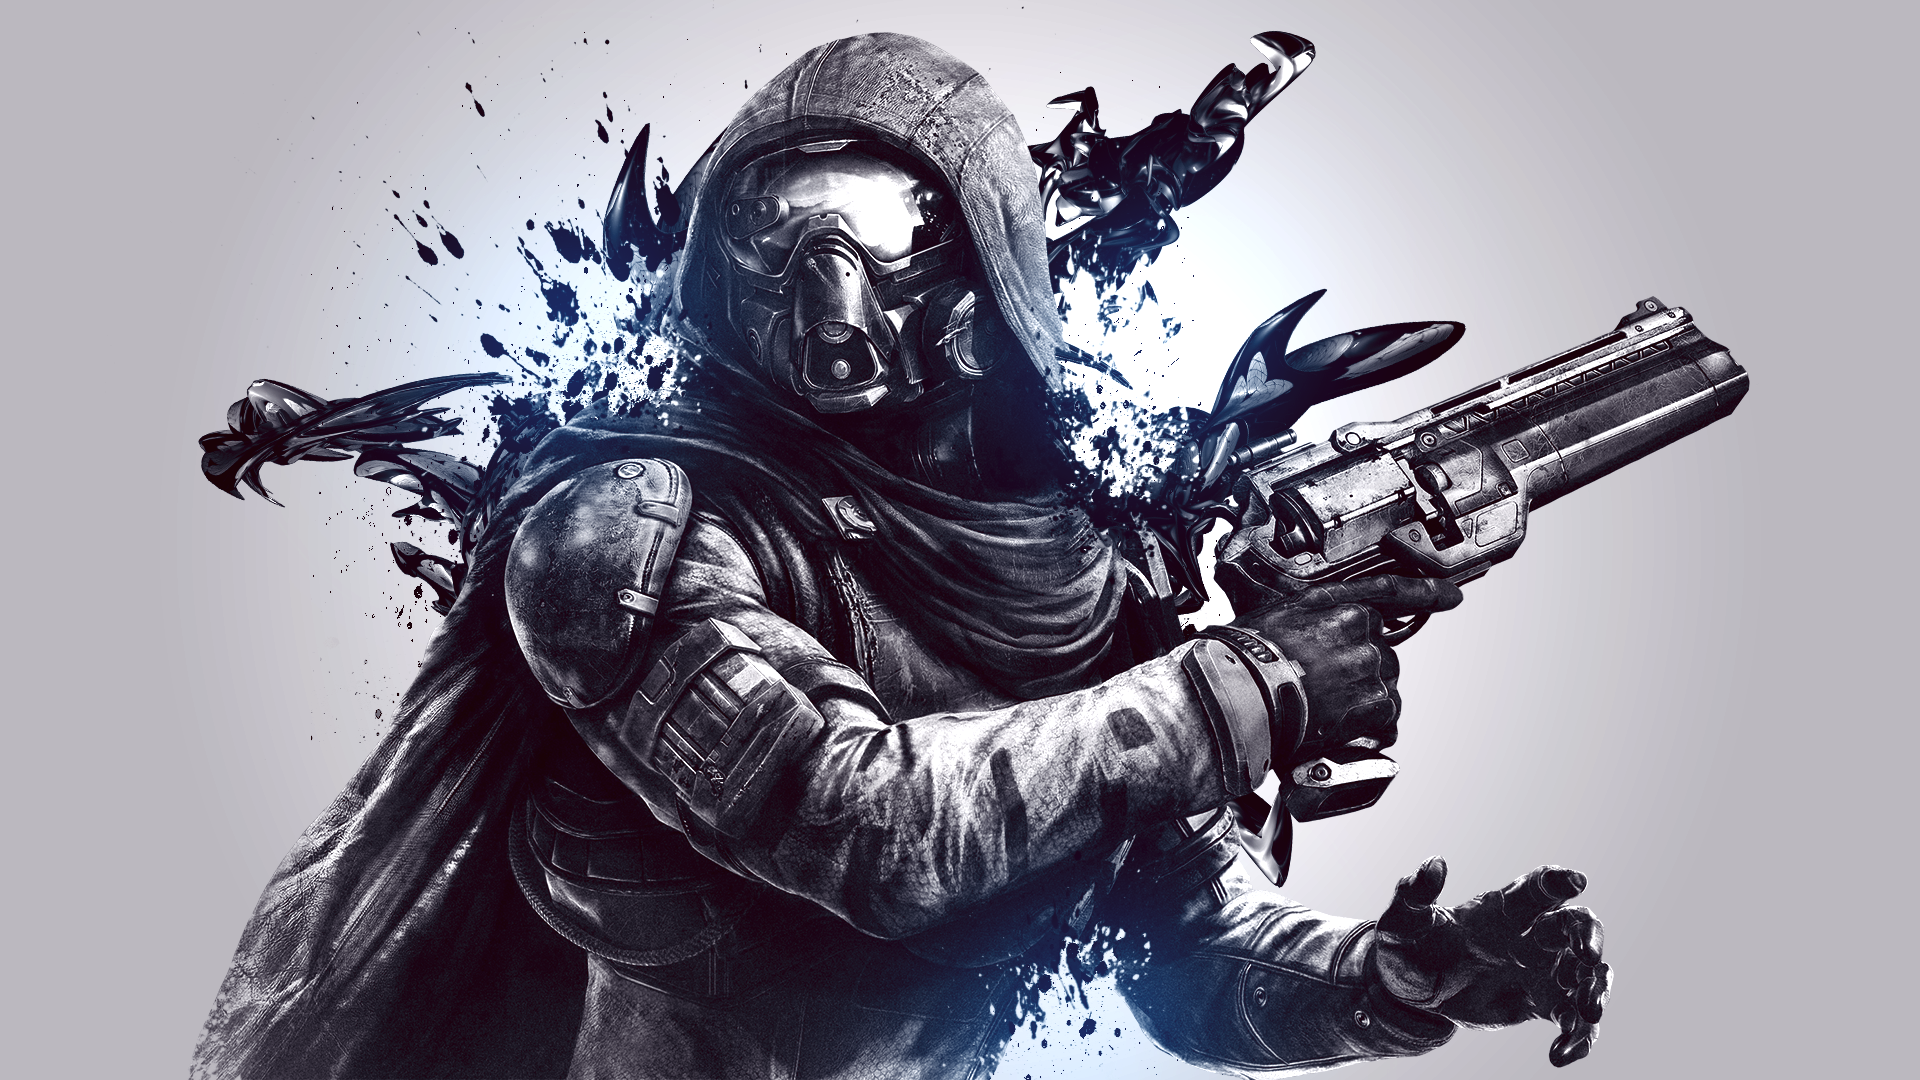 Destiny 2 Wallpaper 1920x1080: Hunter Wallpaper Destiny